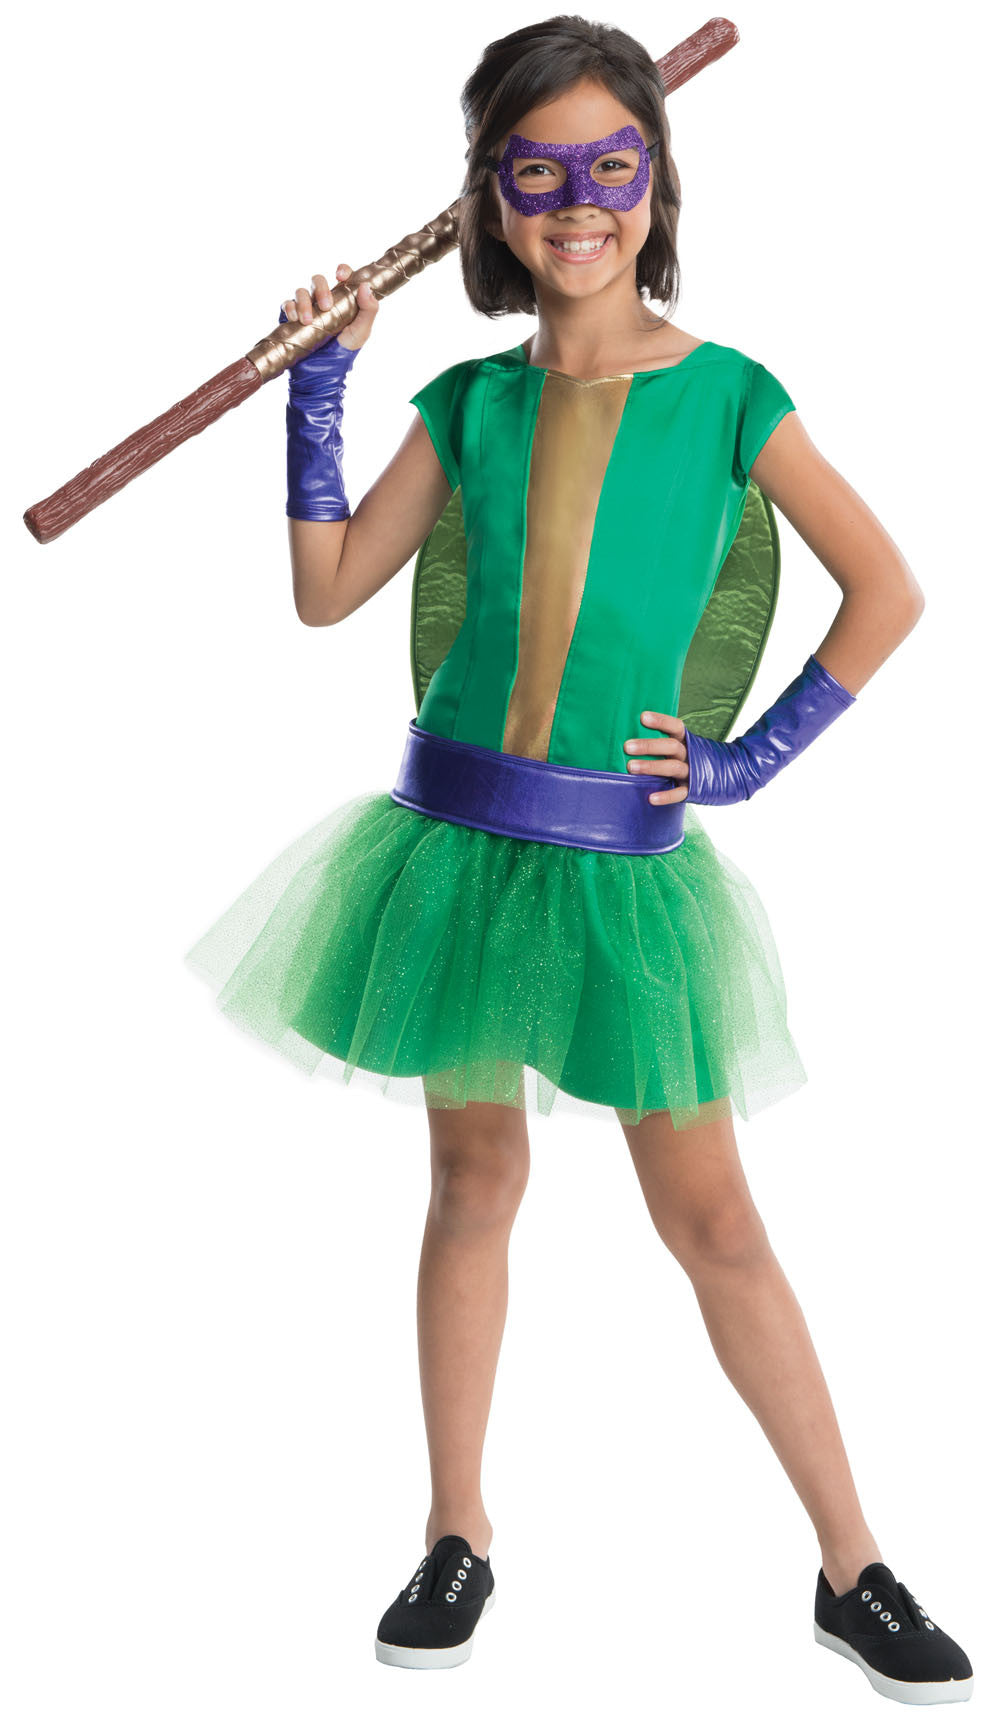 TMNT DONATELLO TUTU DRESS - SIZE L